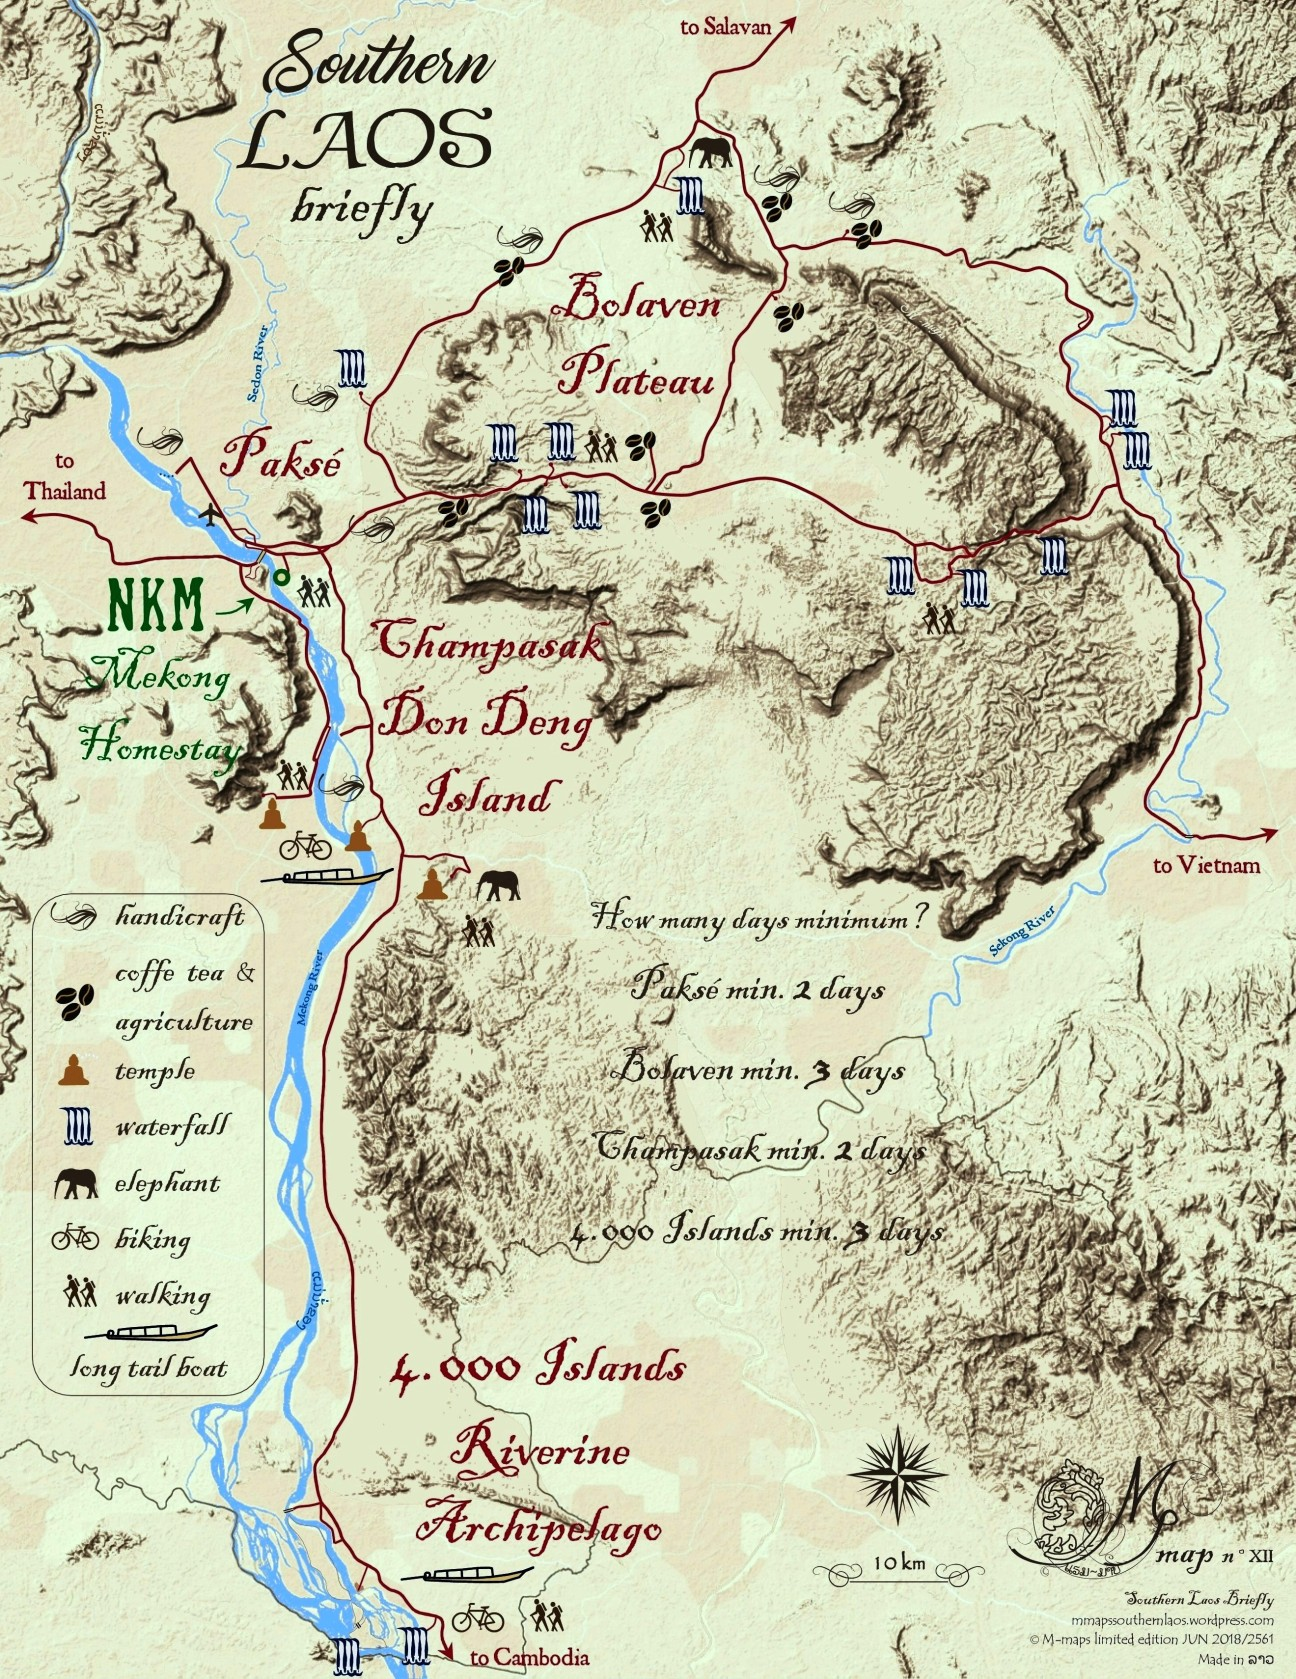 M Map XII Southern Laos briefly